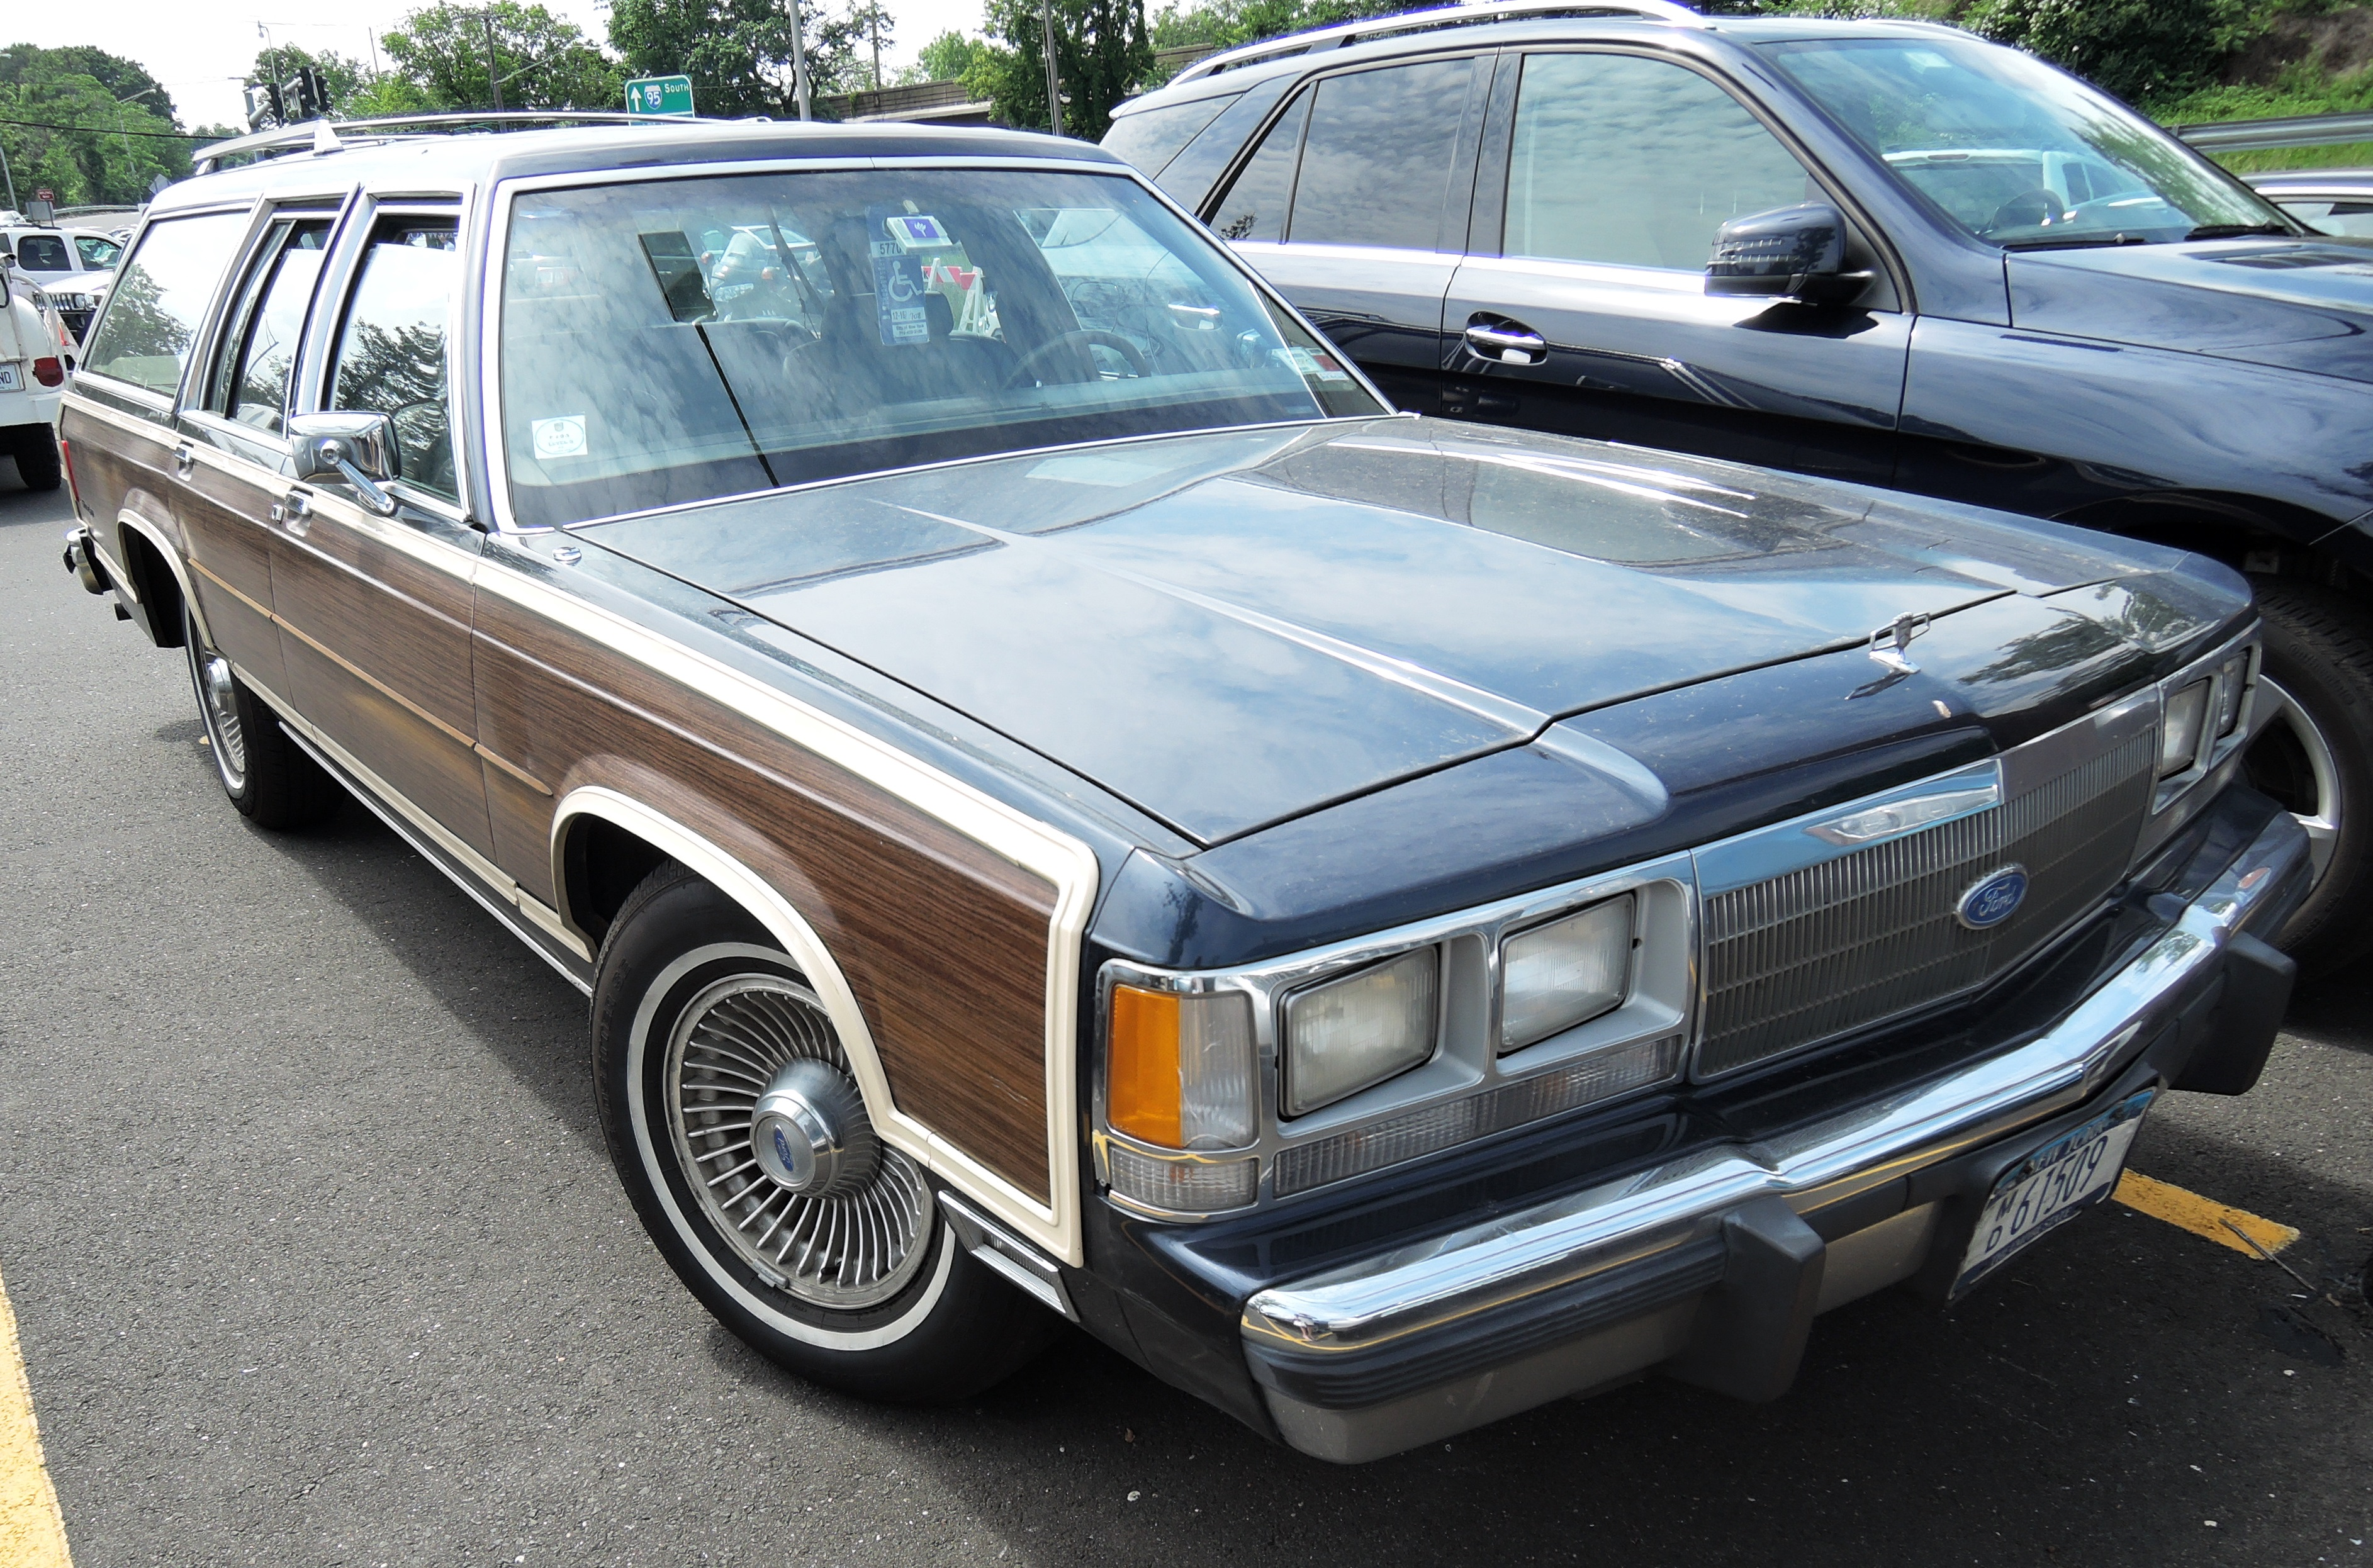 ford ltd station wagon - greenwich concours